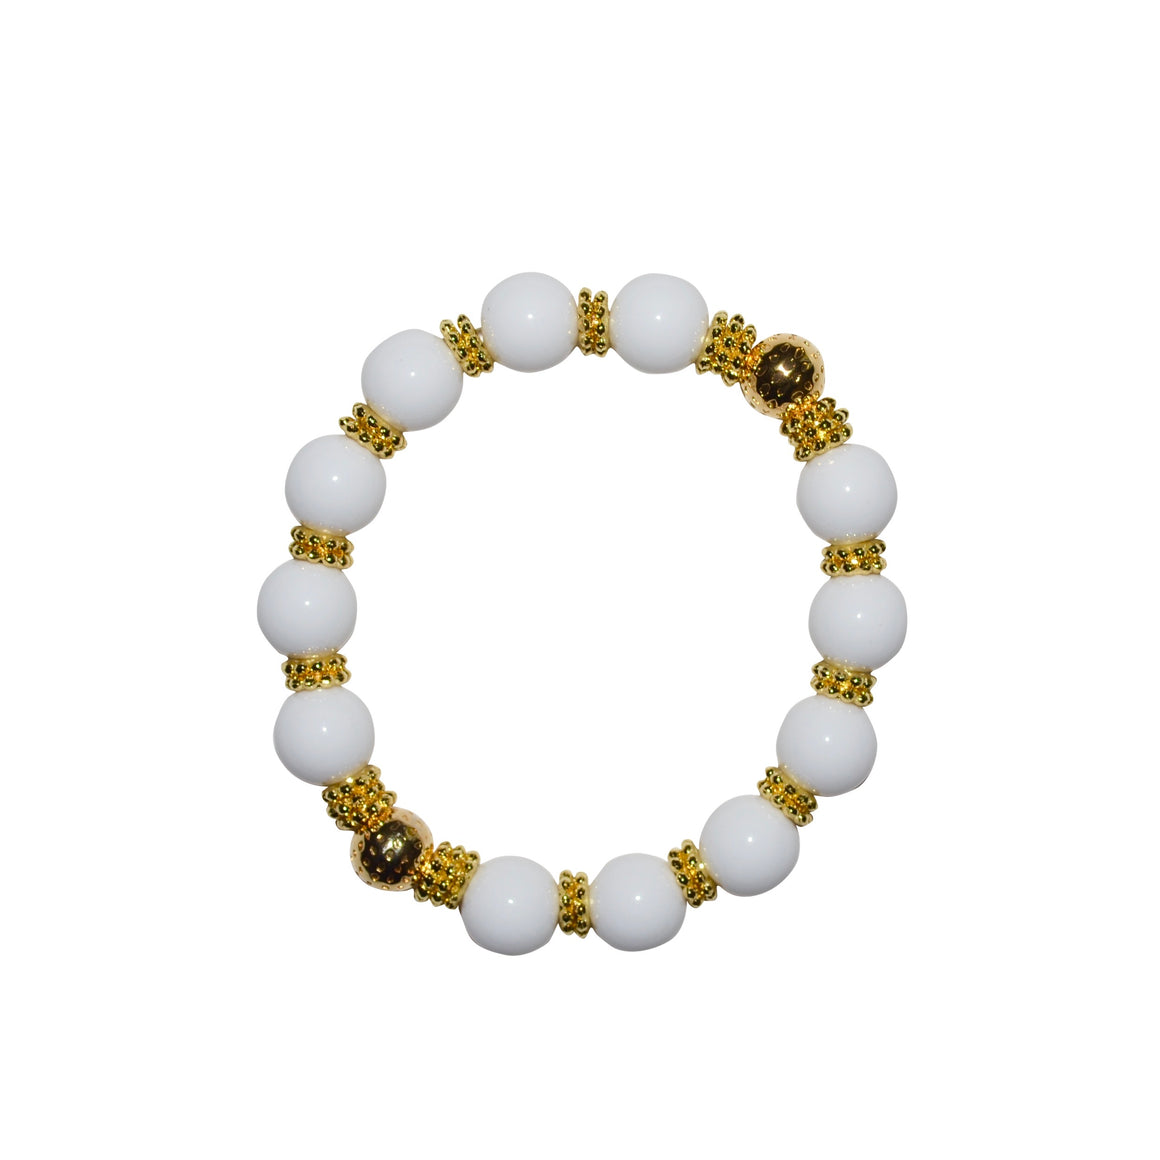 TATE HUDSON BANGLE IN WHITE